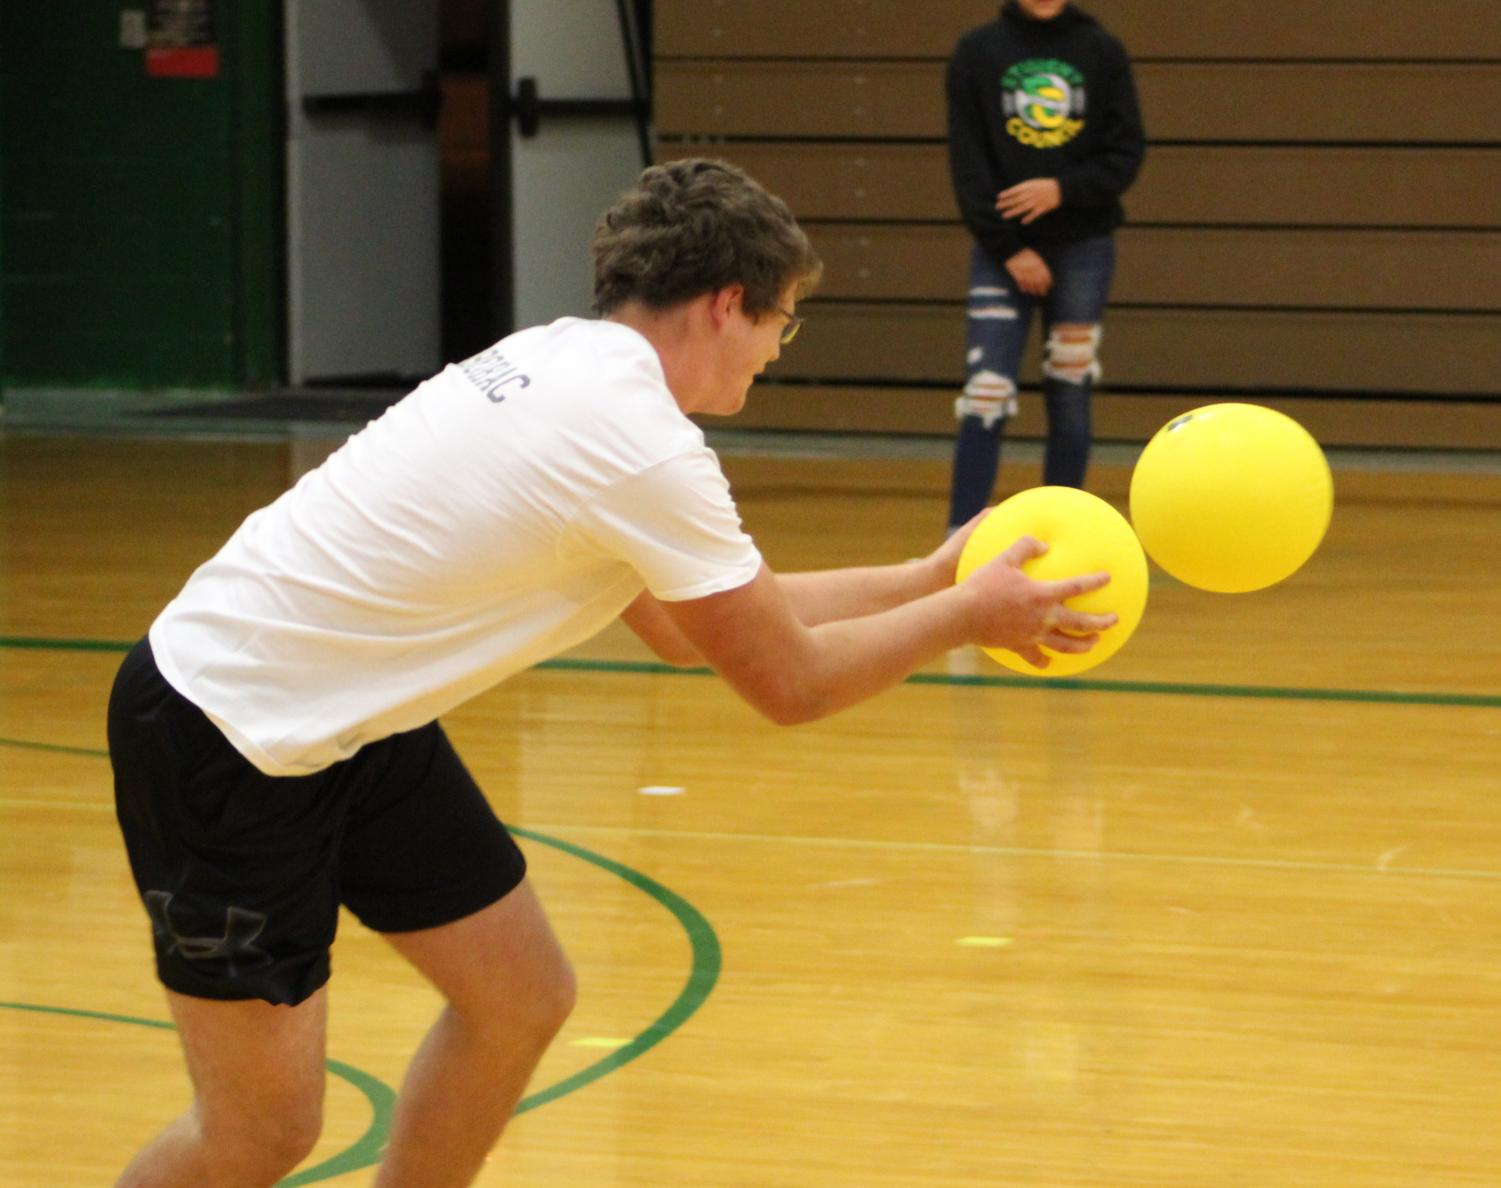 Teams of students dodge for a good cause.